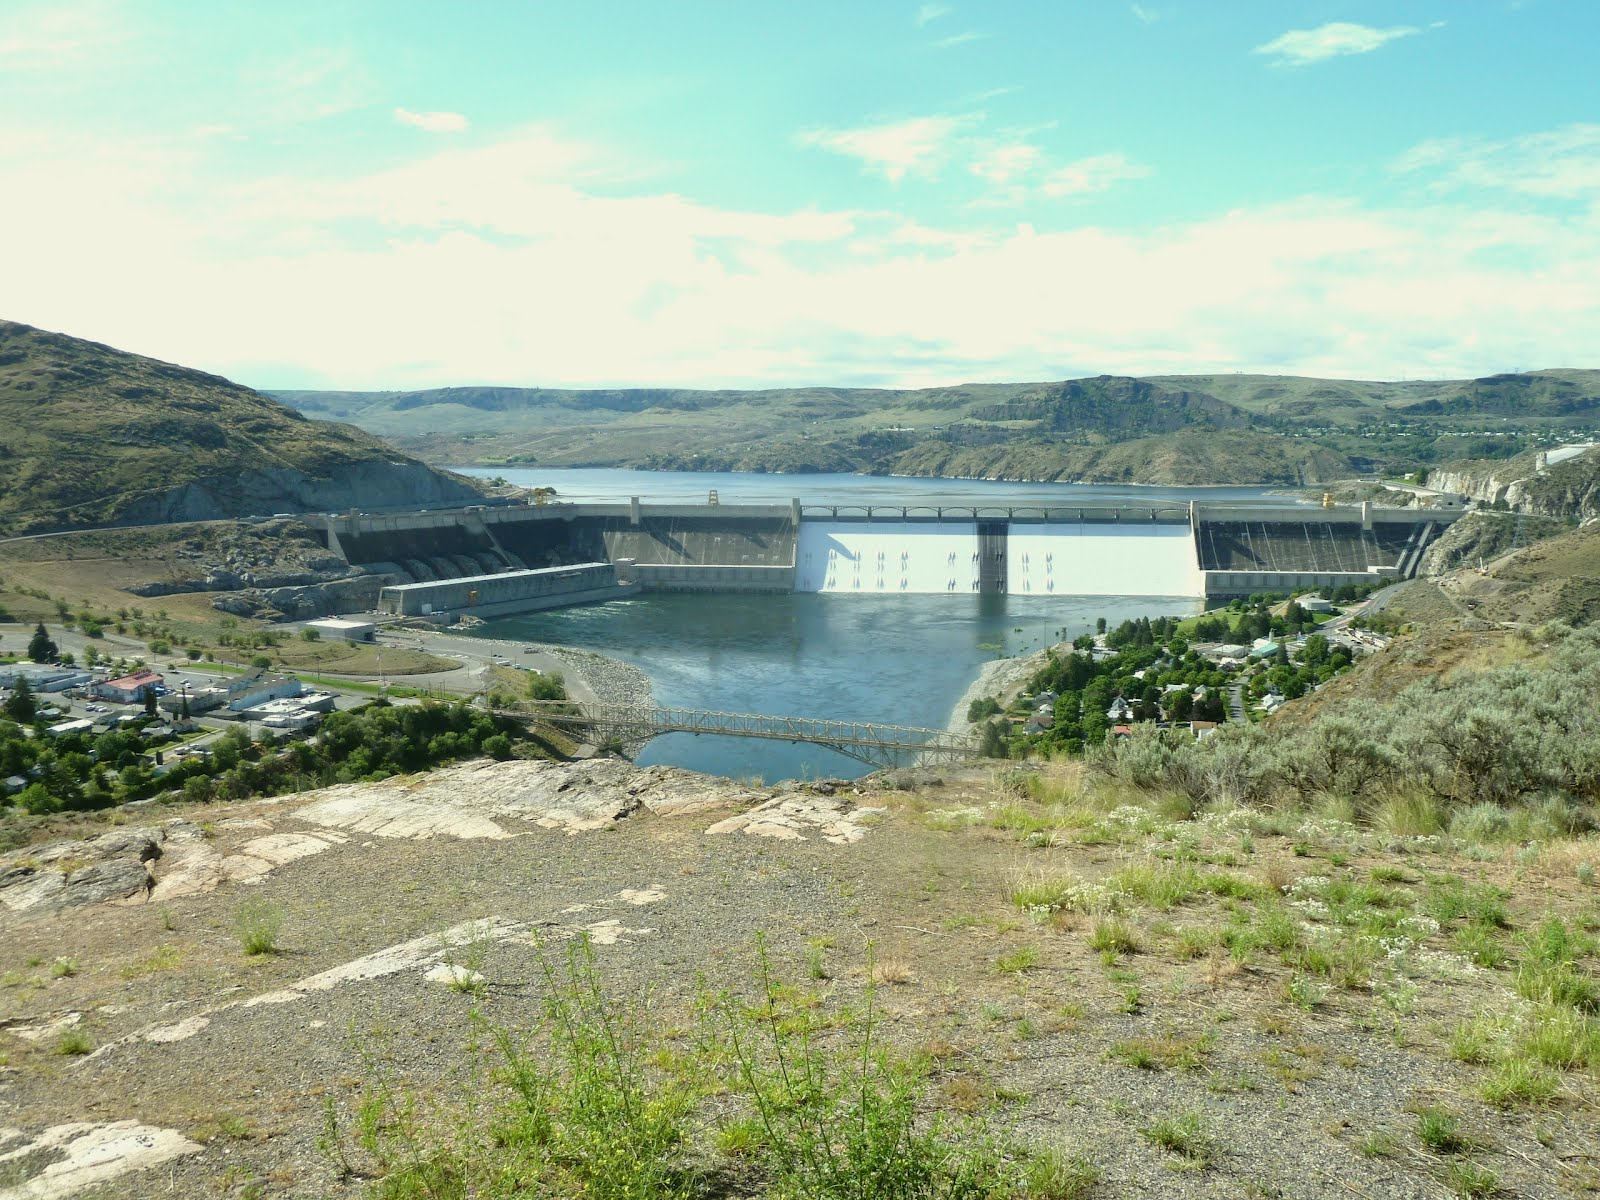 grand coulee senior singles Meetings and notices chamber to meet the grand coulee dam area chamber of commerce will meet this thursday, january 11, at the grand coulee senior center.